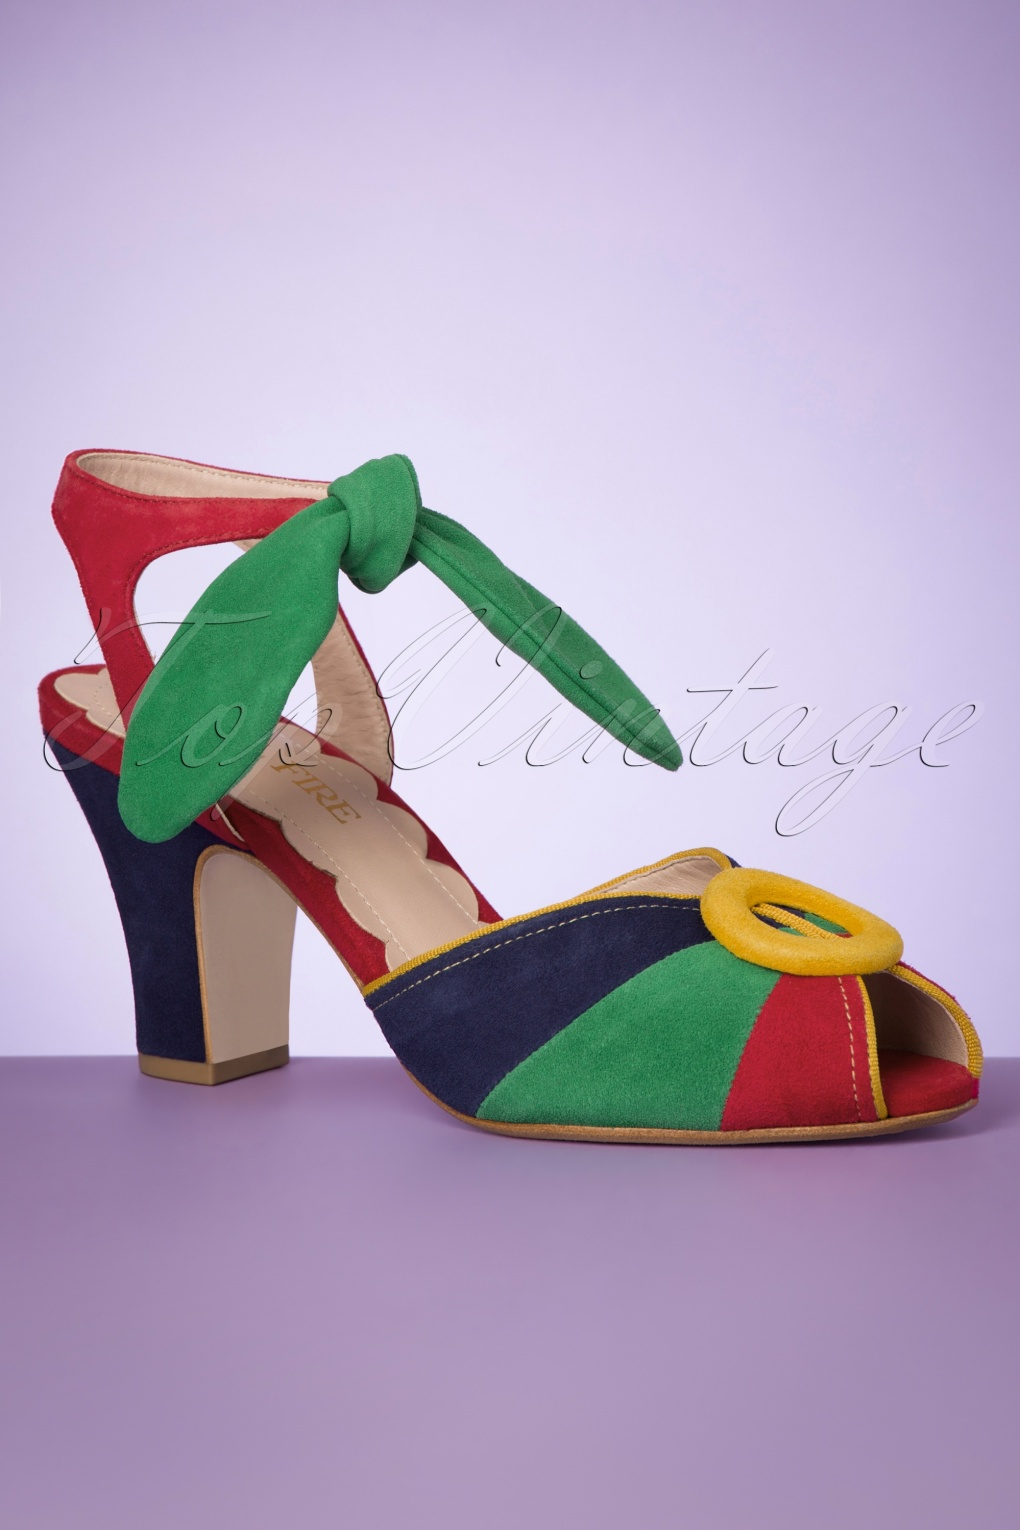 1930s Style Clothing and Fashion 40s Lorena Suede Peeptoe Pumps in Kodachrome Brights £19.95 AT vintagedancer.com